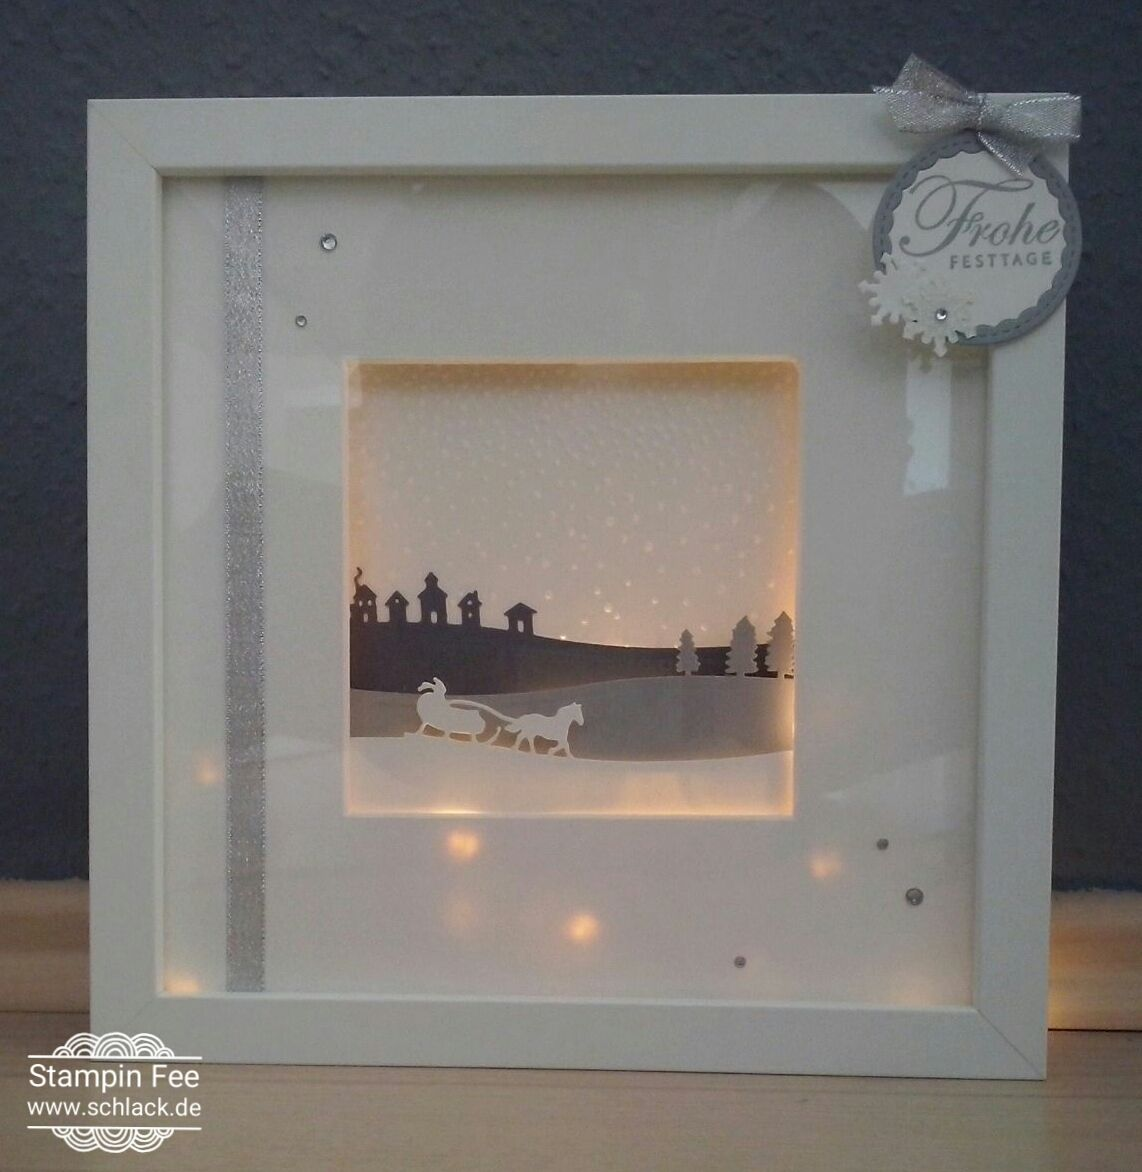 Bilderrahmen Mit Licht Stampin Frame Light Winter Slight Christmas Ribba Rahmen